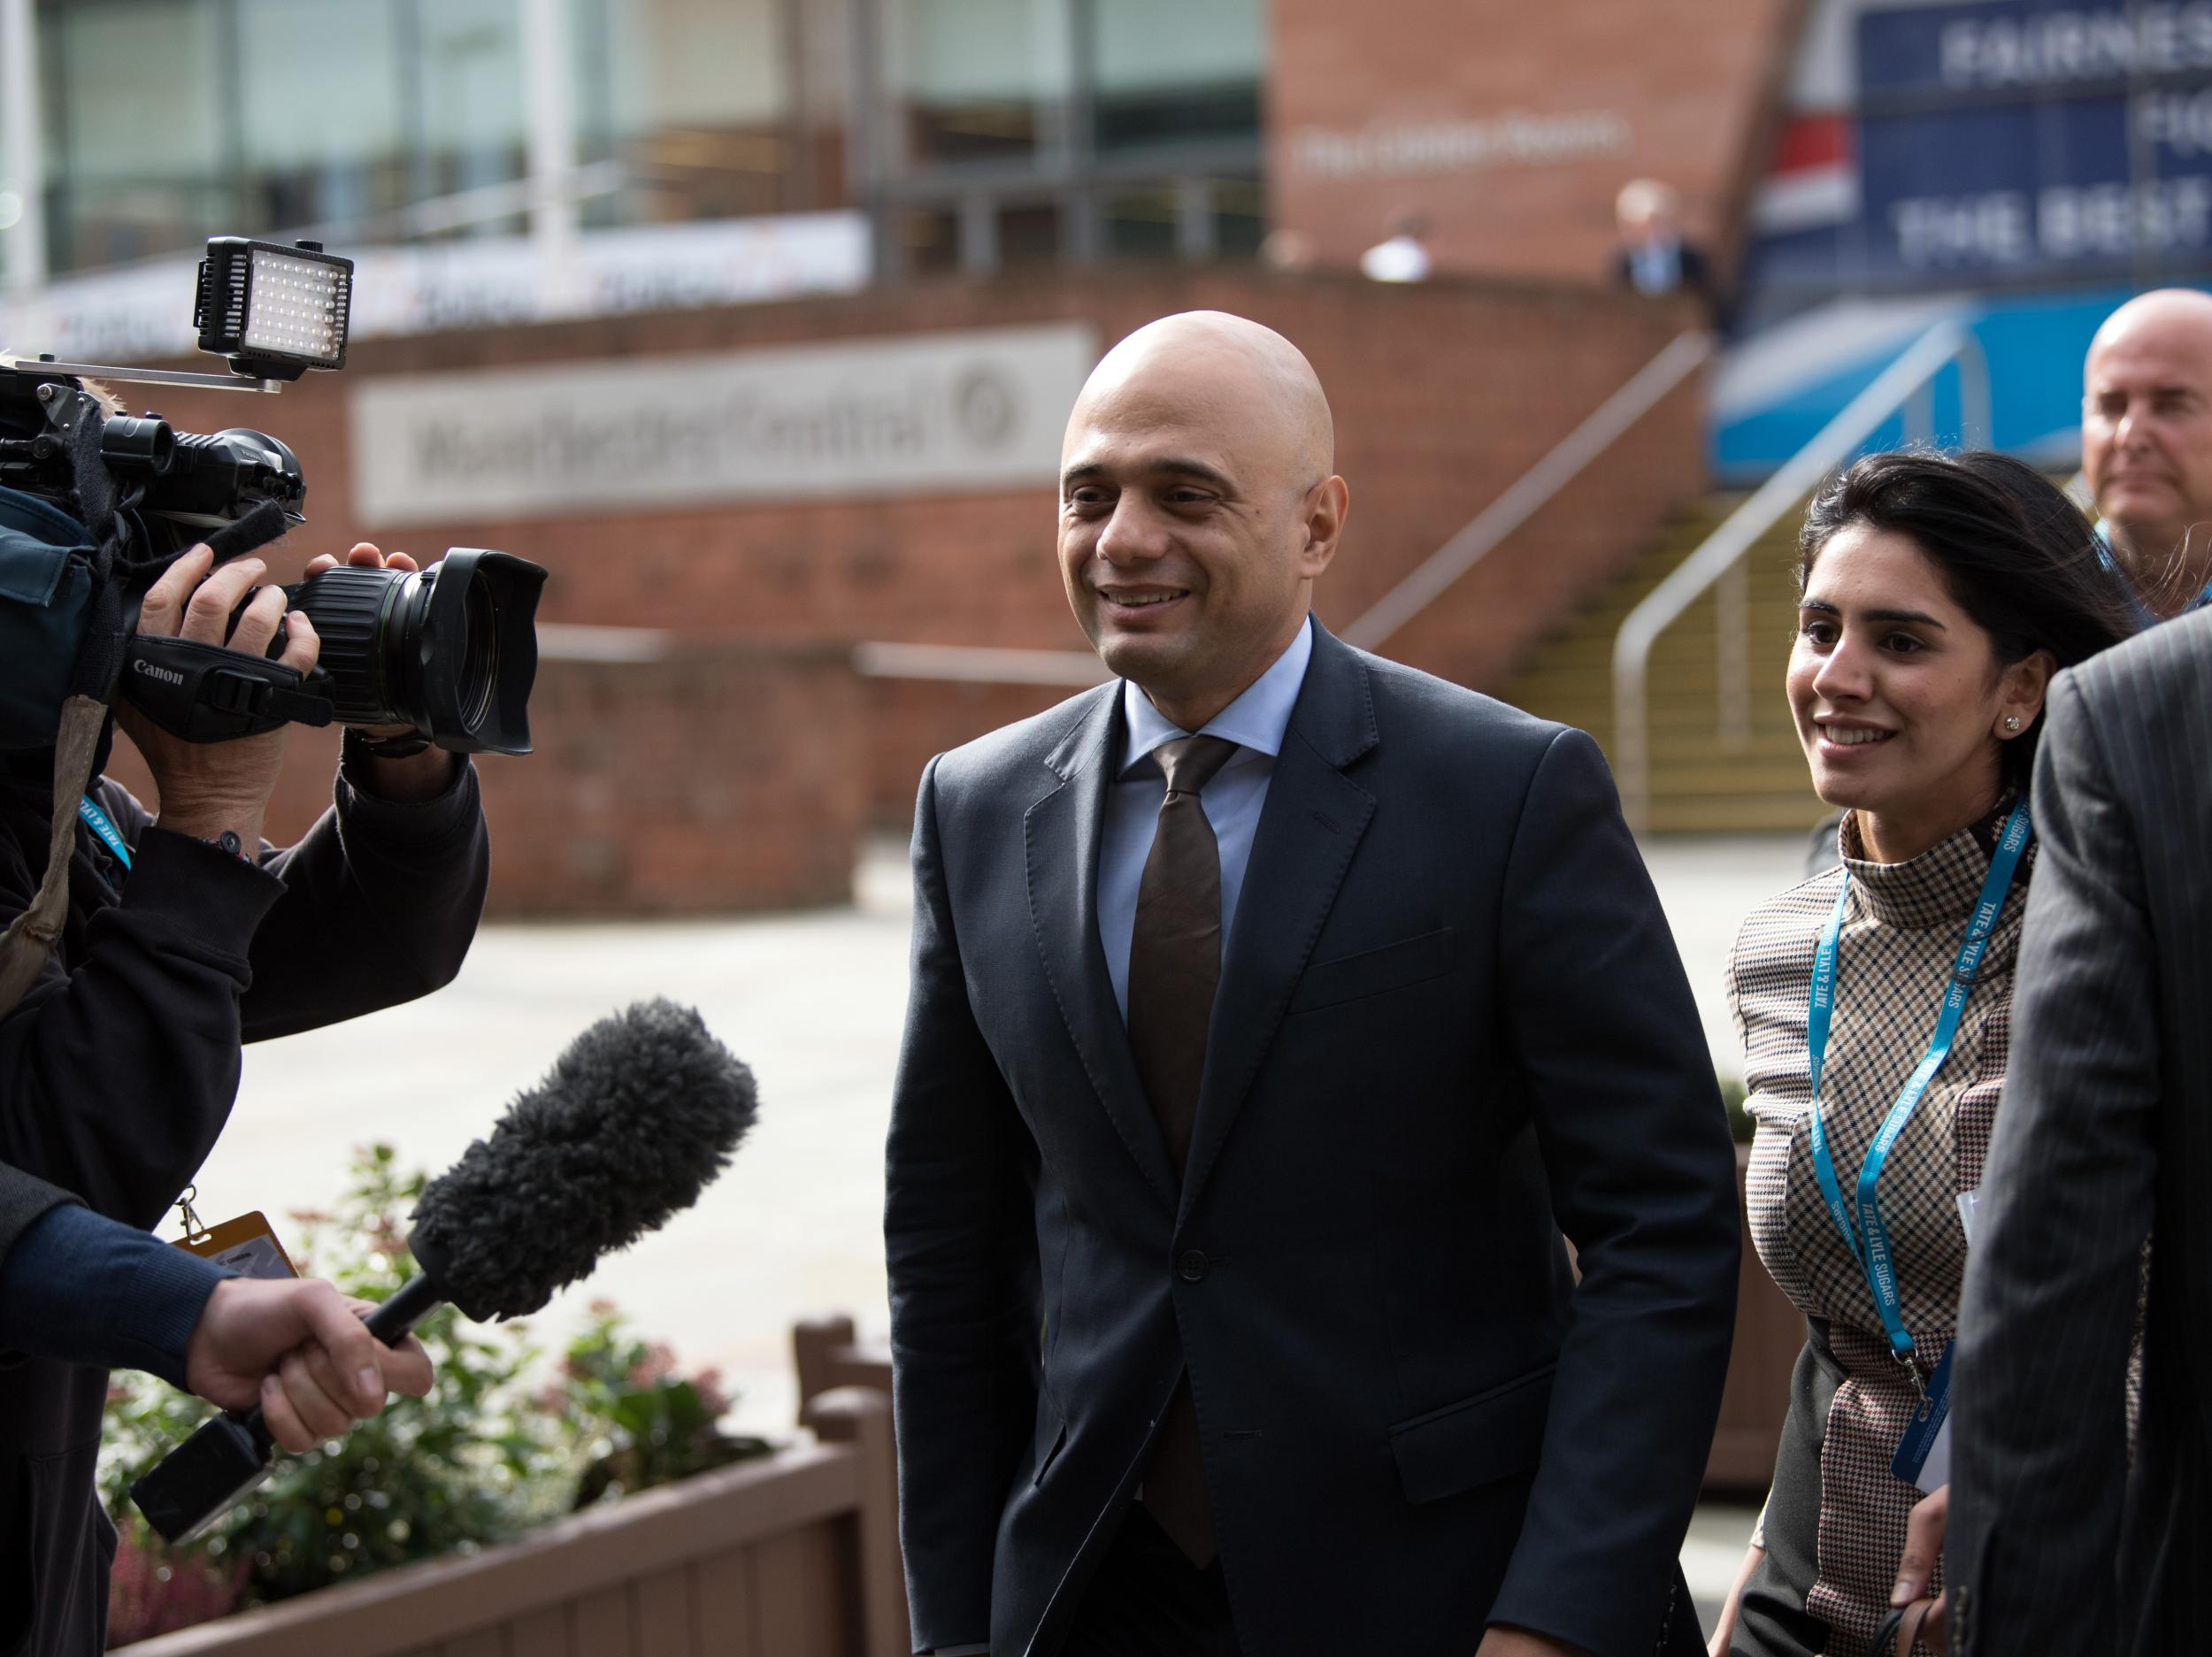 It's time Sajid Javid took action and created a compulsory housing ombudsman